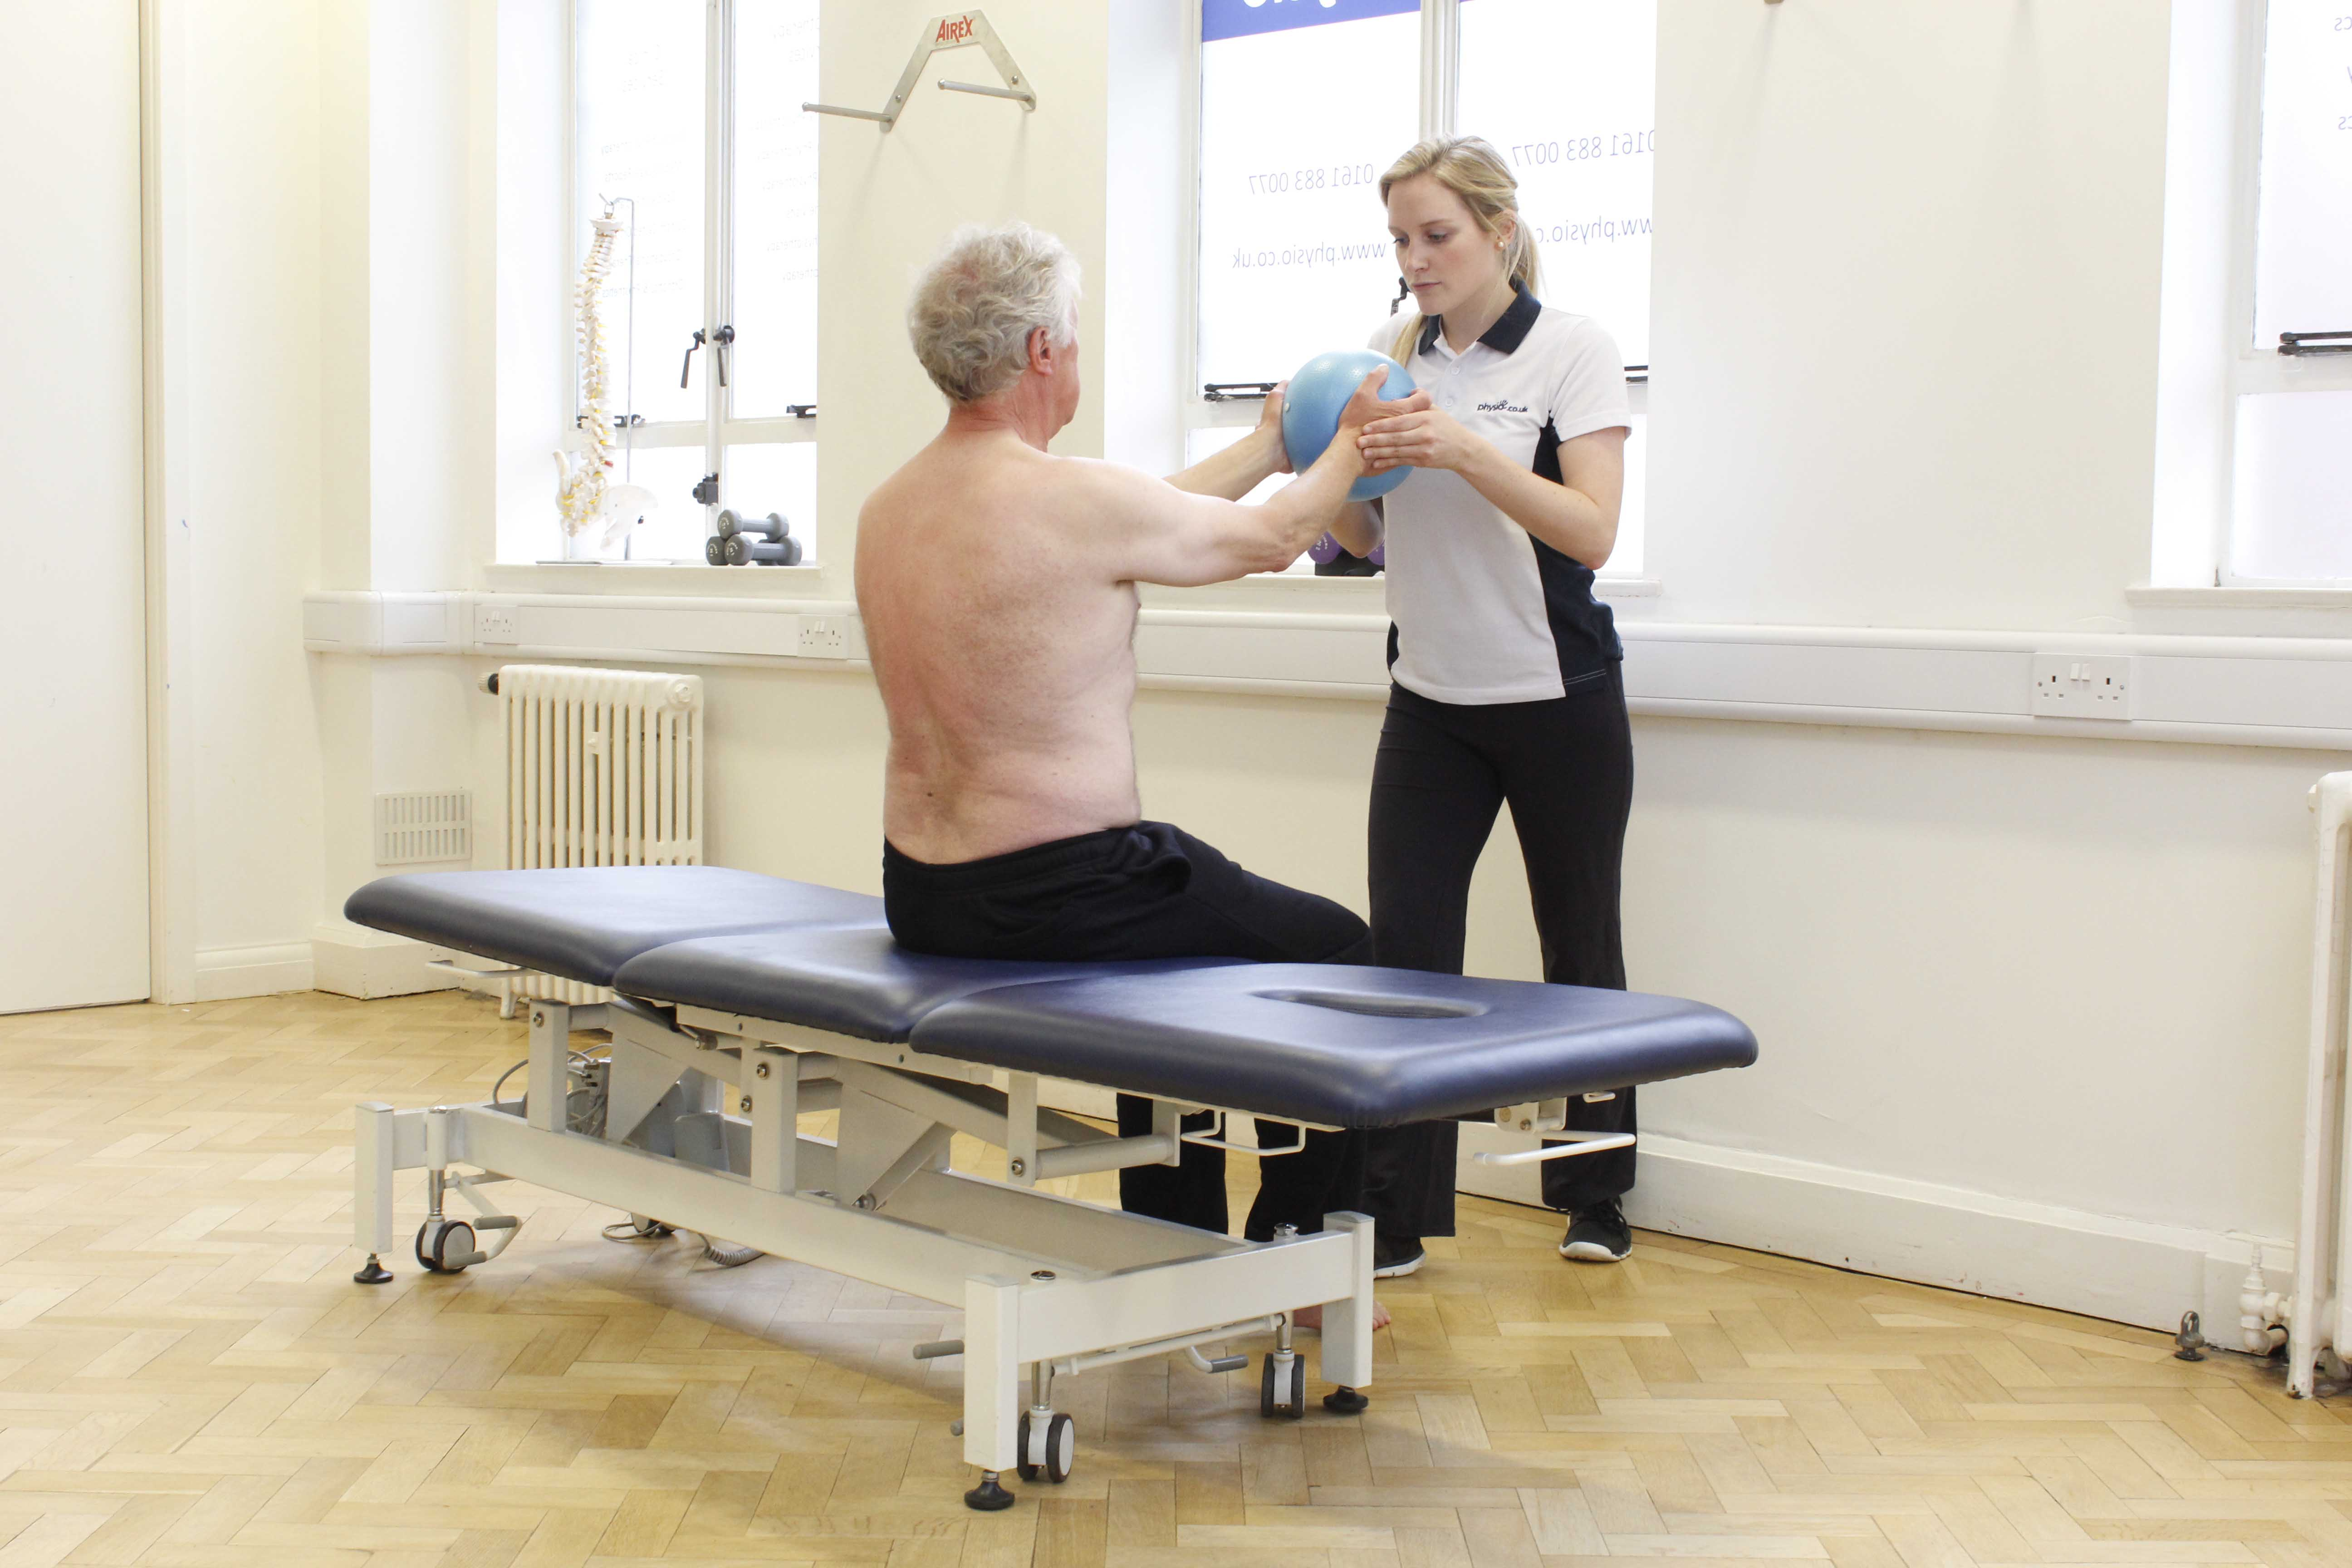 Functional mobility exercises supervised by a neurological physiotherapist